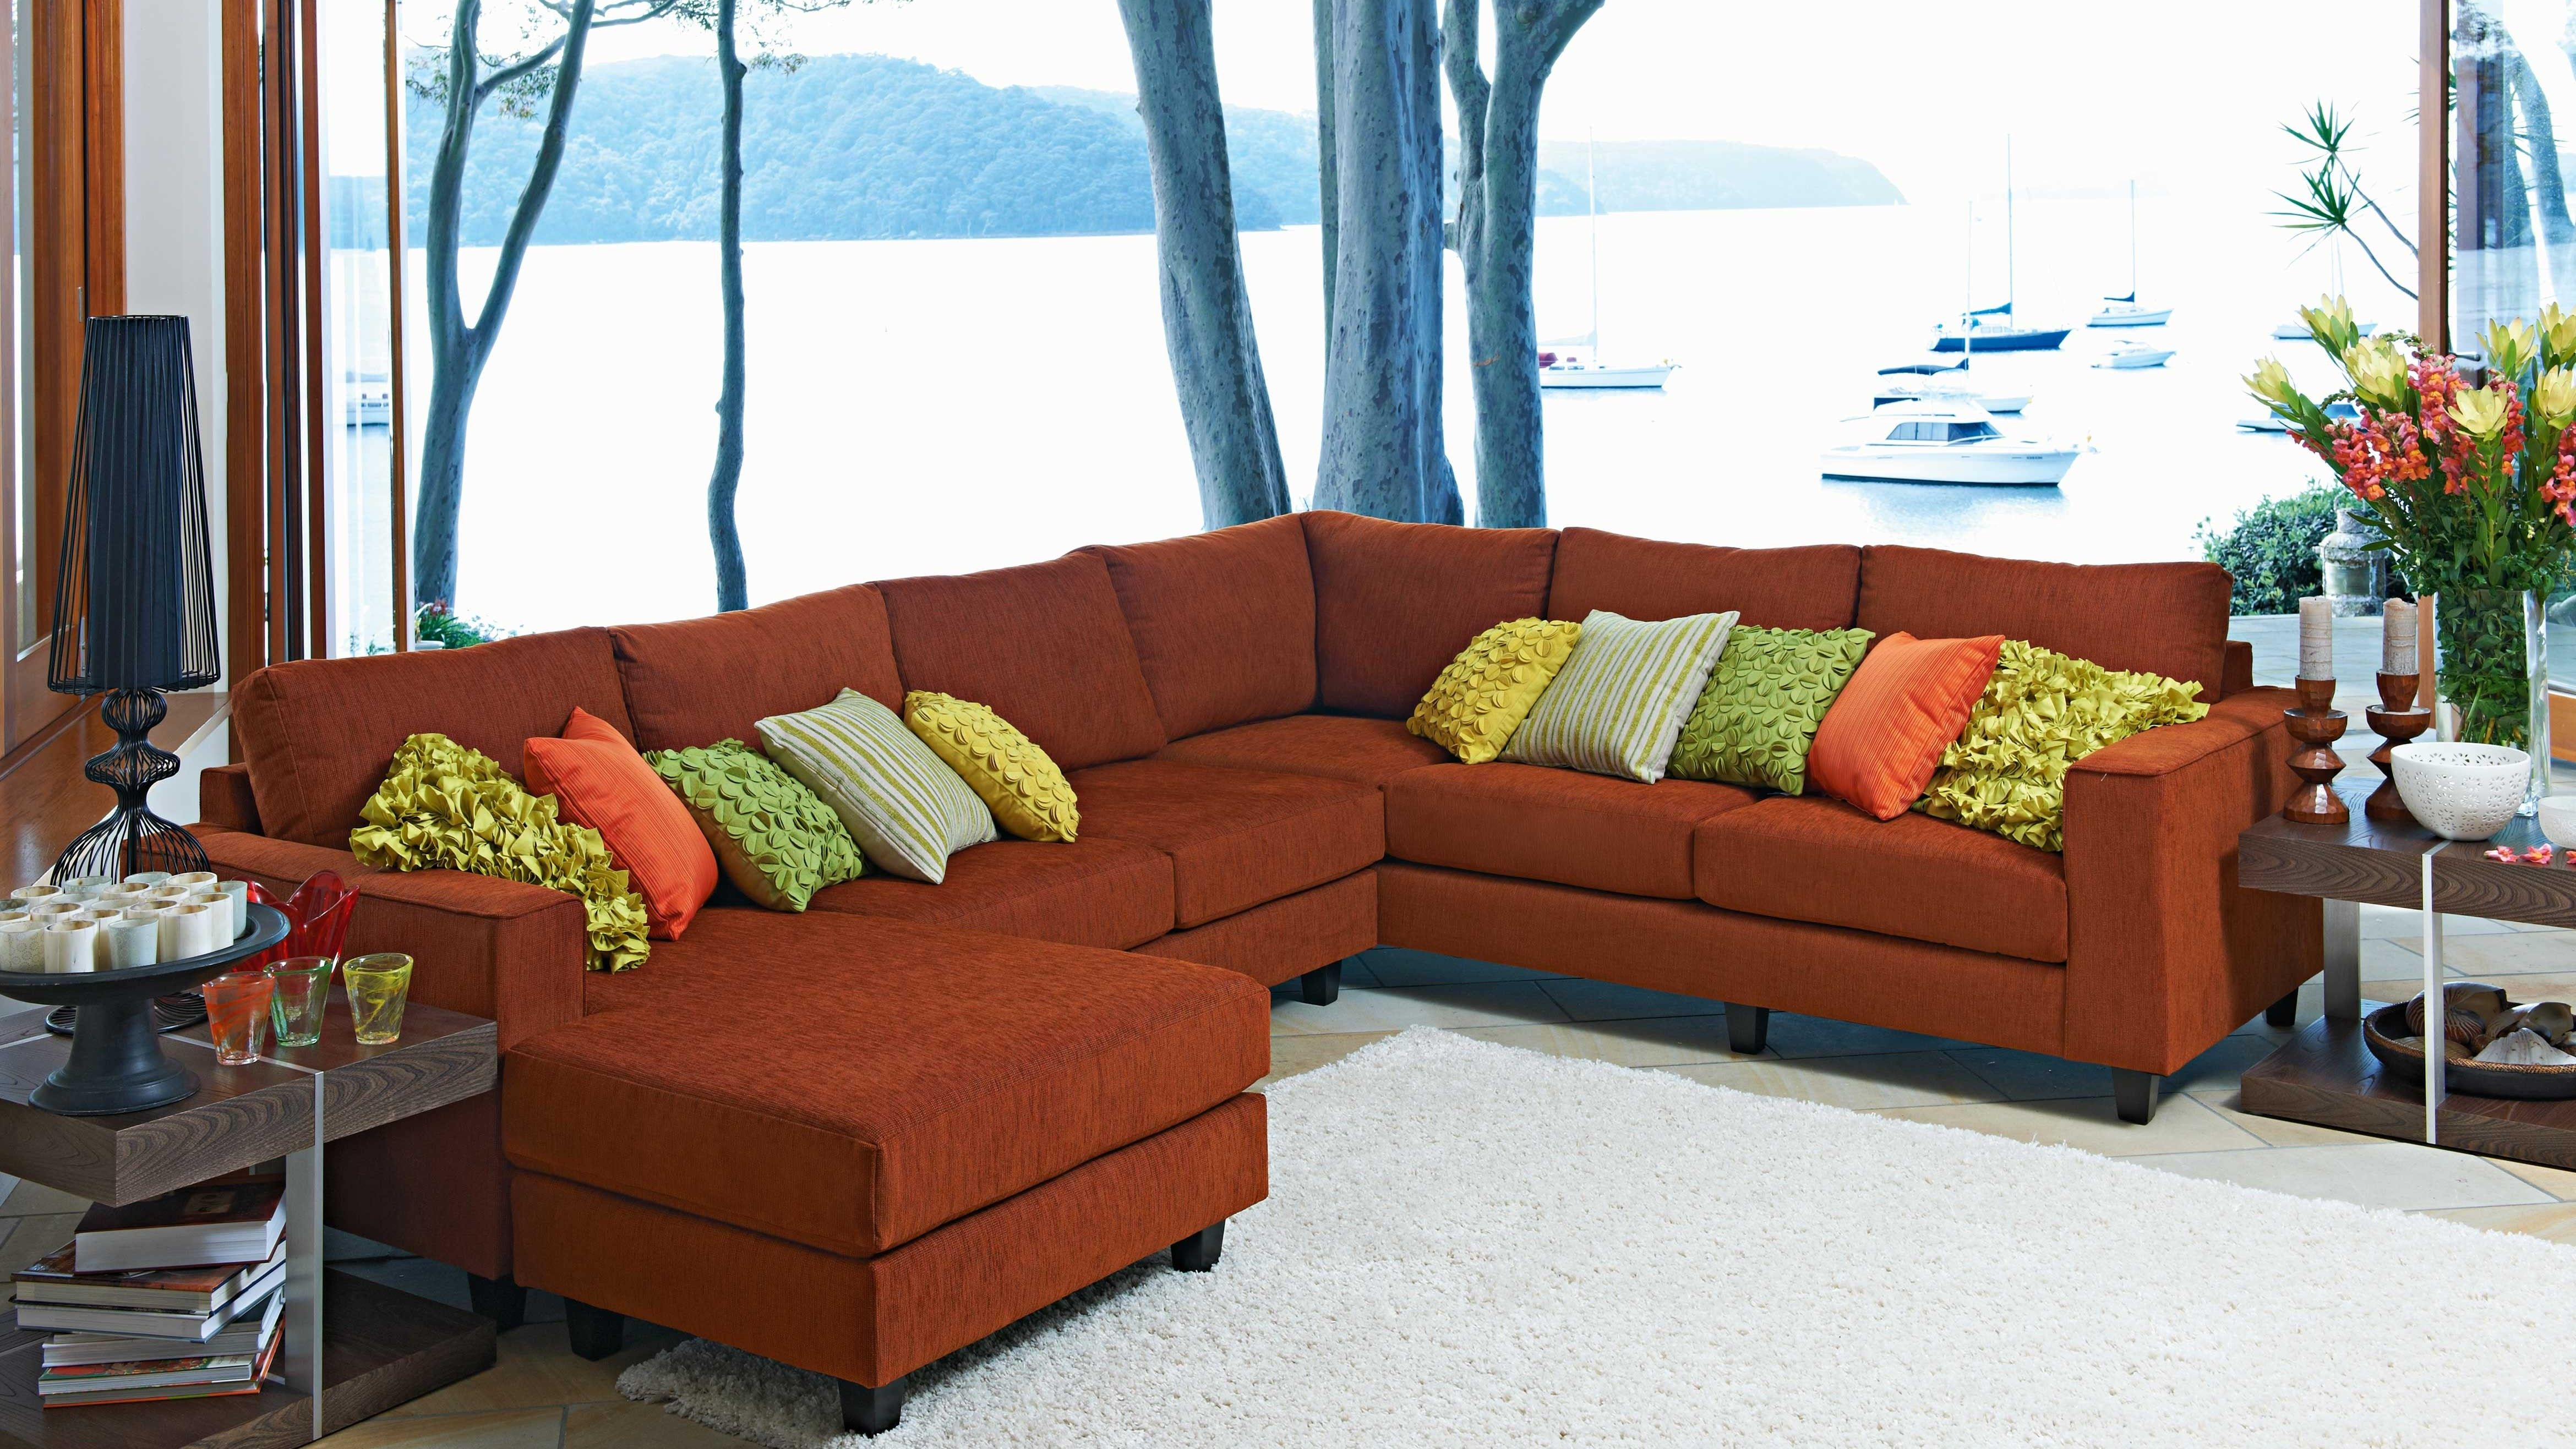 Ordered my new lounge today so thankful Can t wait to some